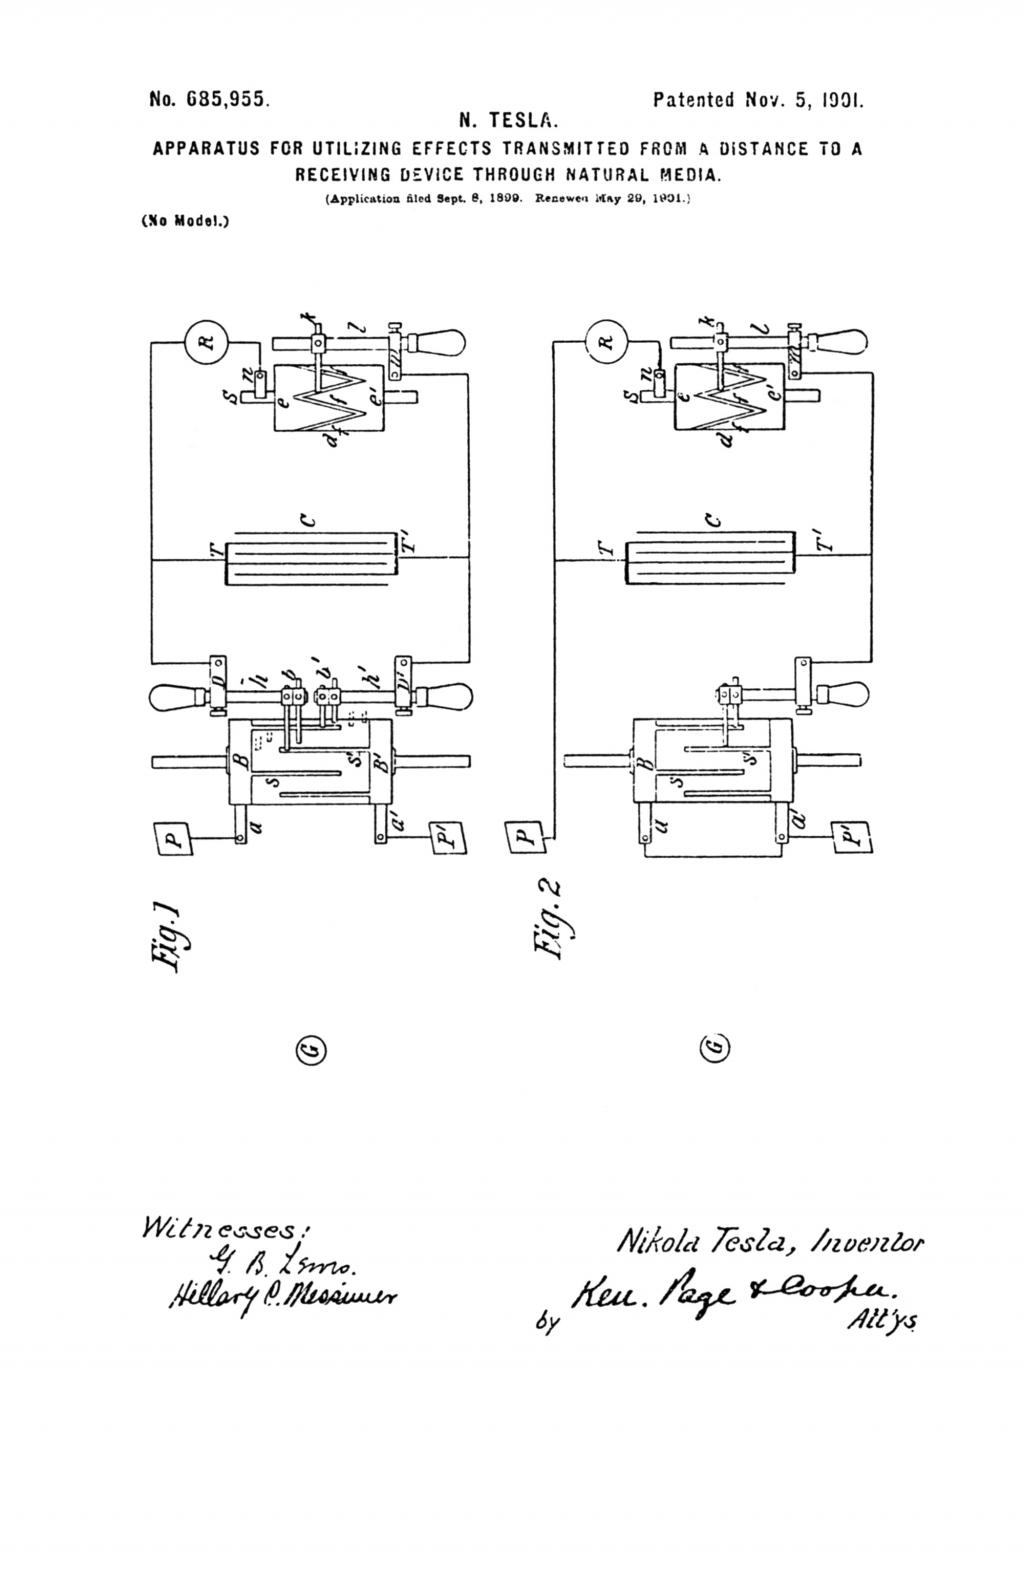 Nikola Tesla U.S. Patent 685,955 - Apparatus for Utilizing Effects Transmitted From A Distance To A Receiving Device Through Natural Media - Image 1